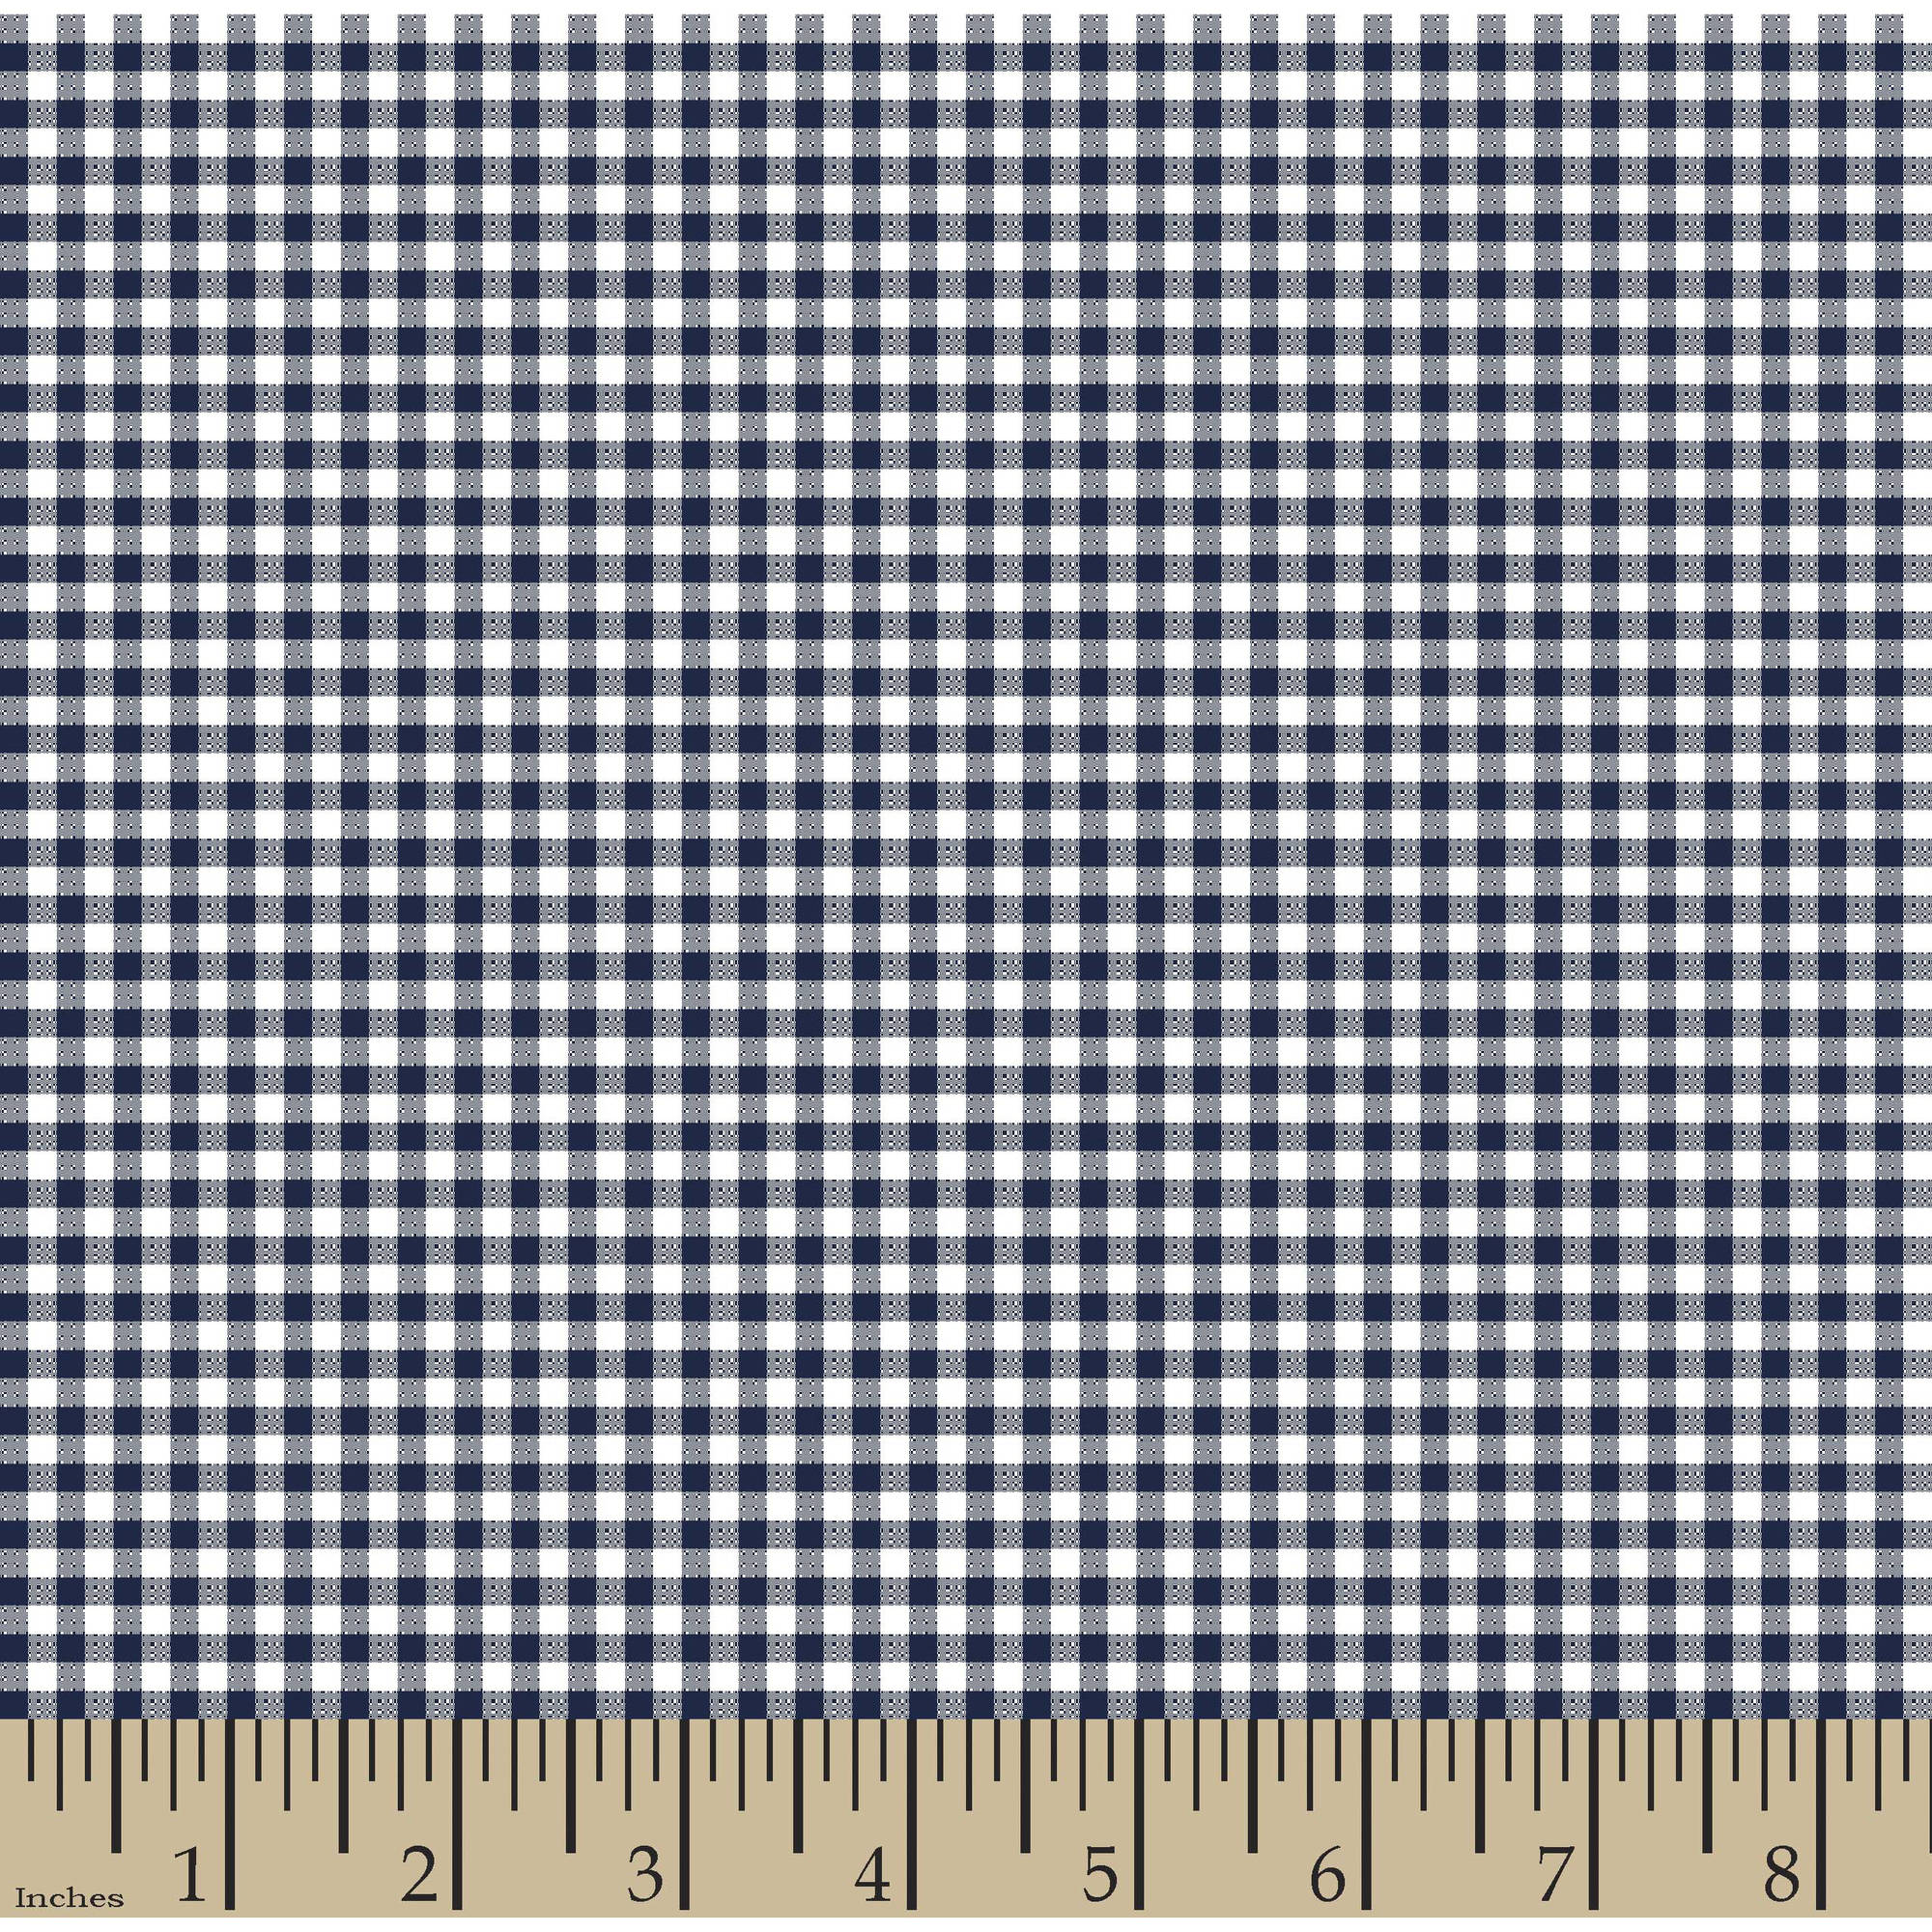 "Woven Gingham Check 1/8"" 65/35 Poly/Cotton Fabric by the Yard, Navy Ink, 44/45"" Width"